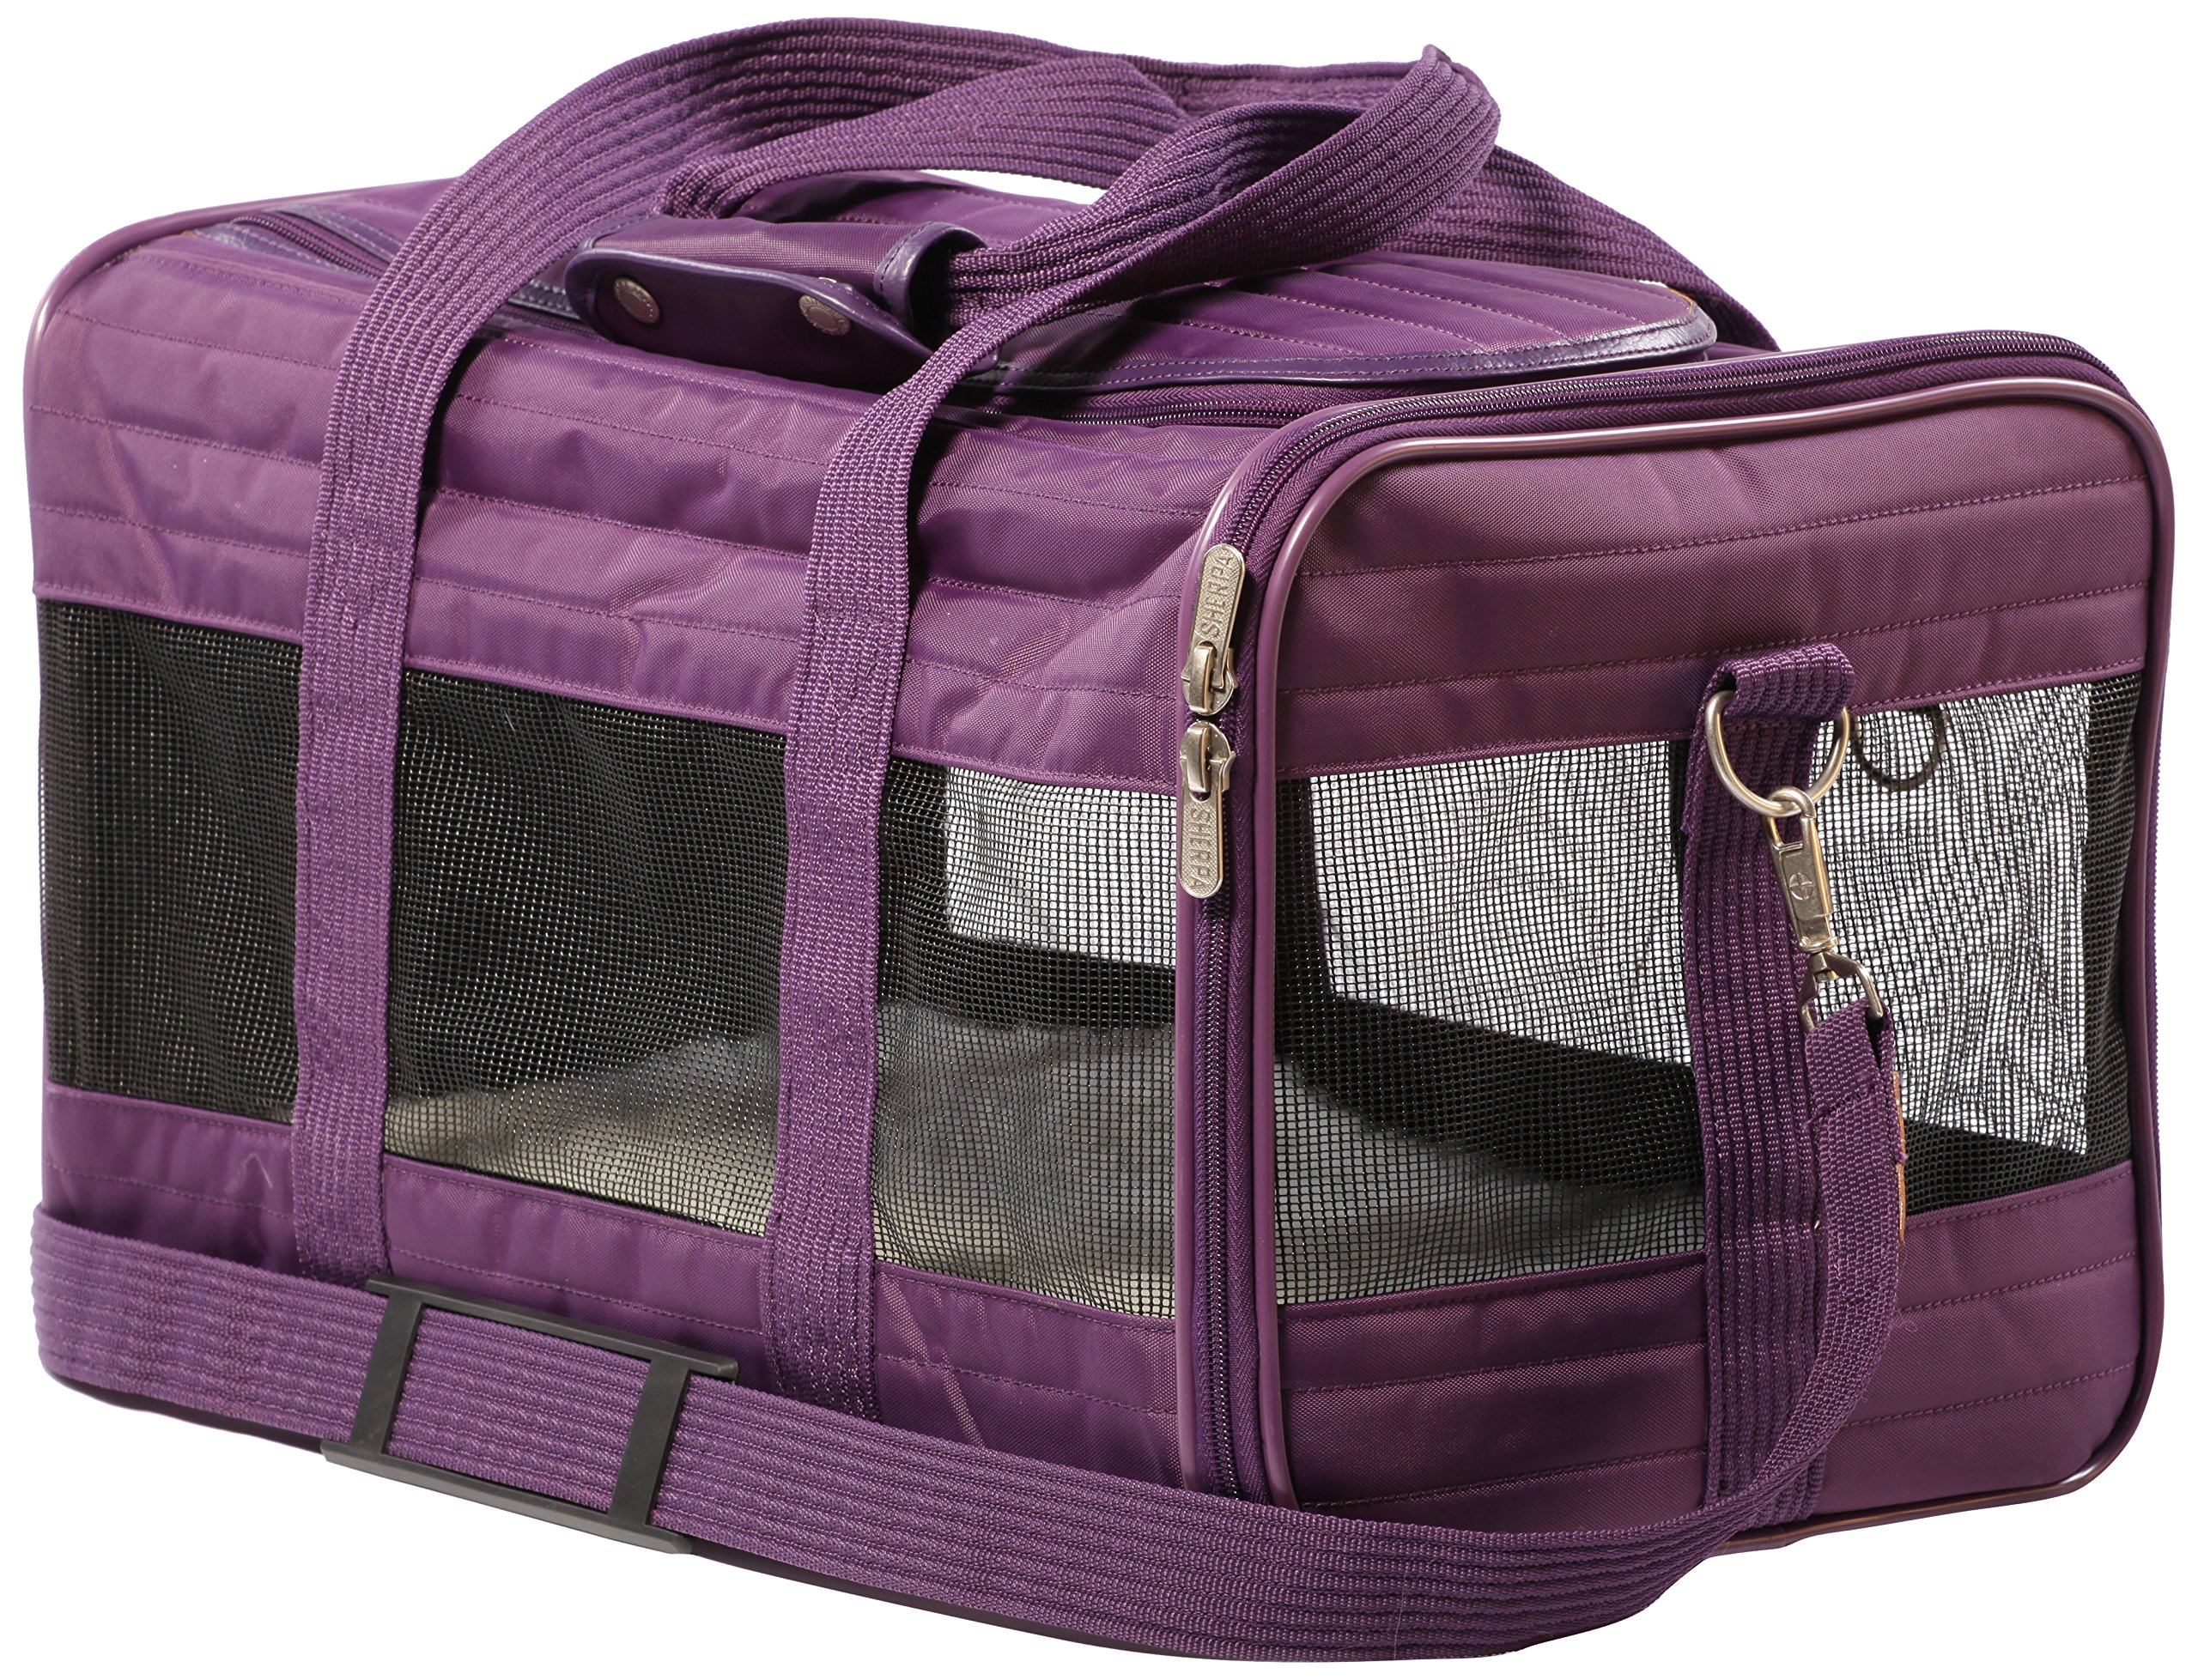 Sherpa Original Pet Carrier, Medium Plum